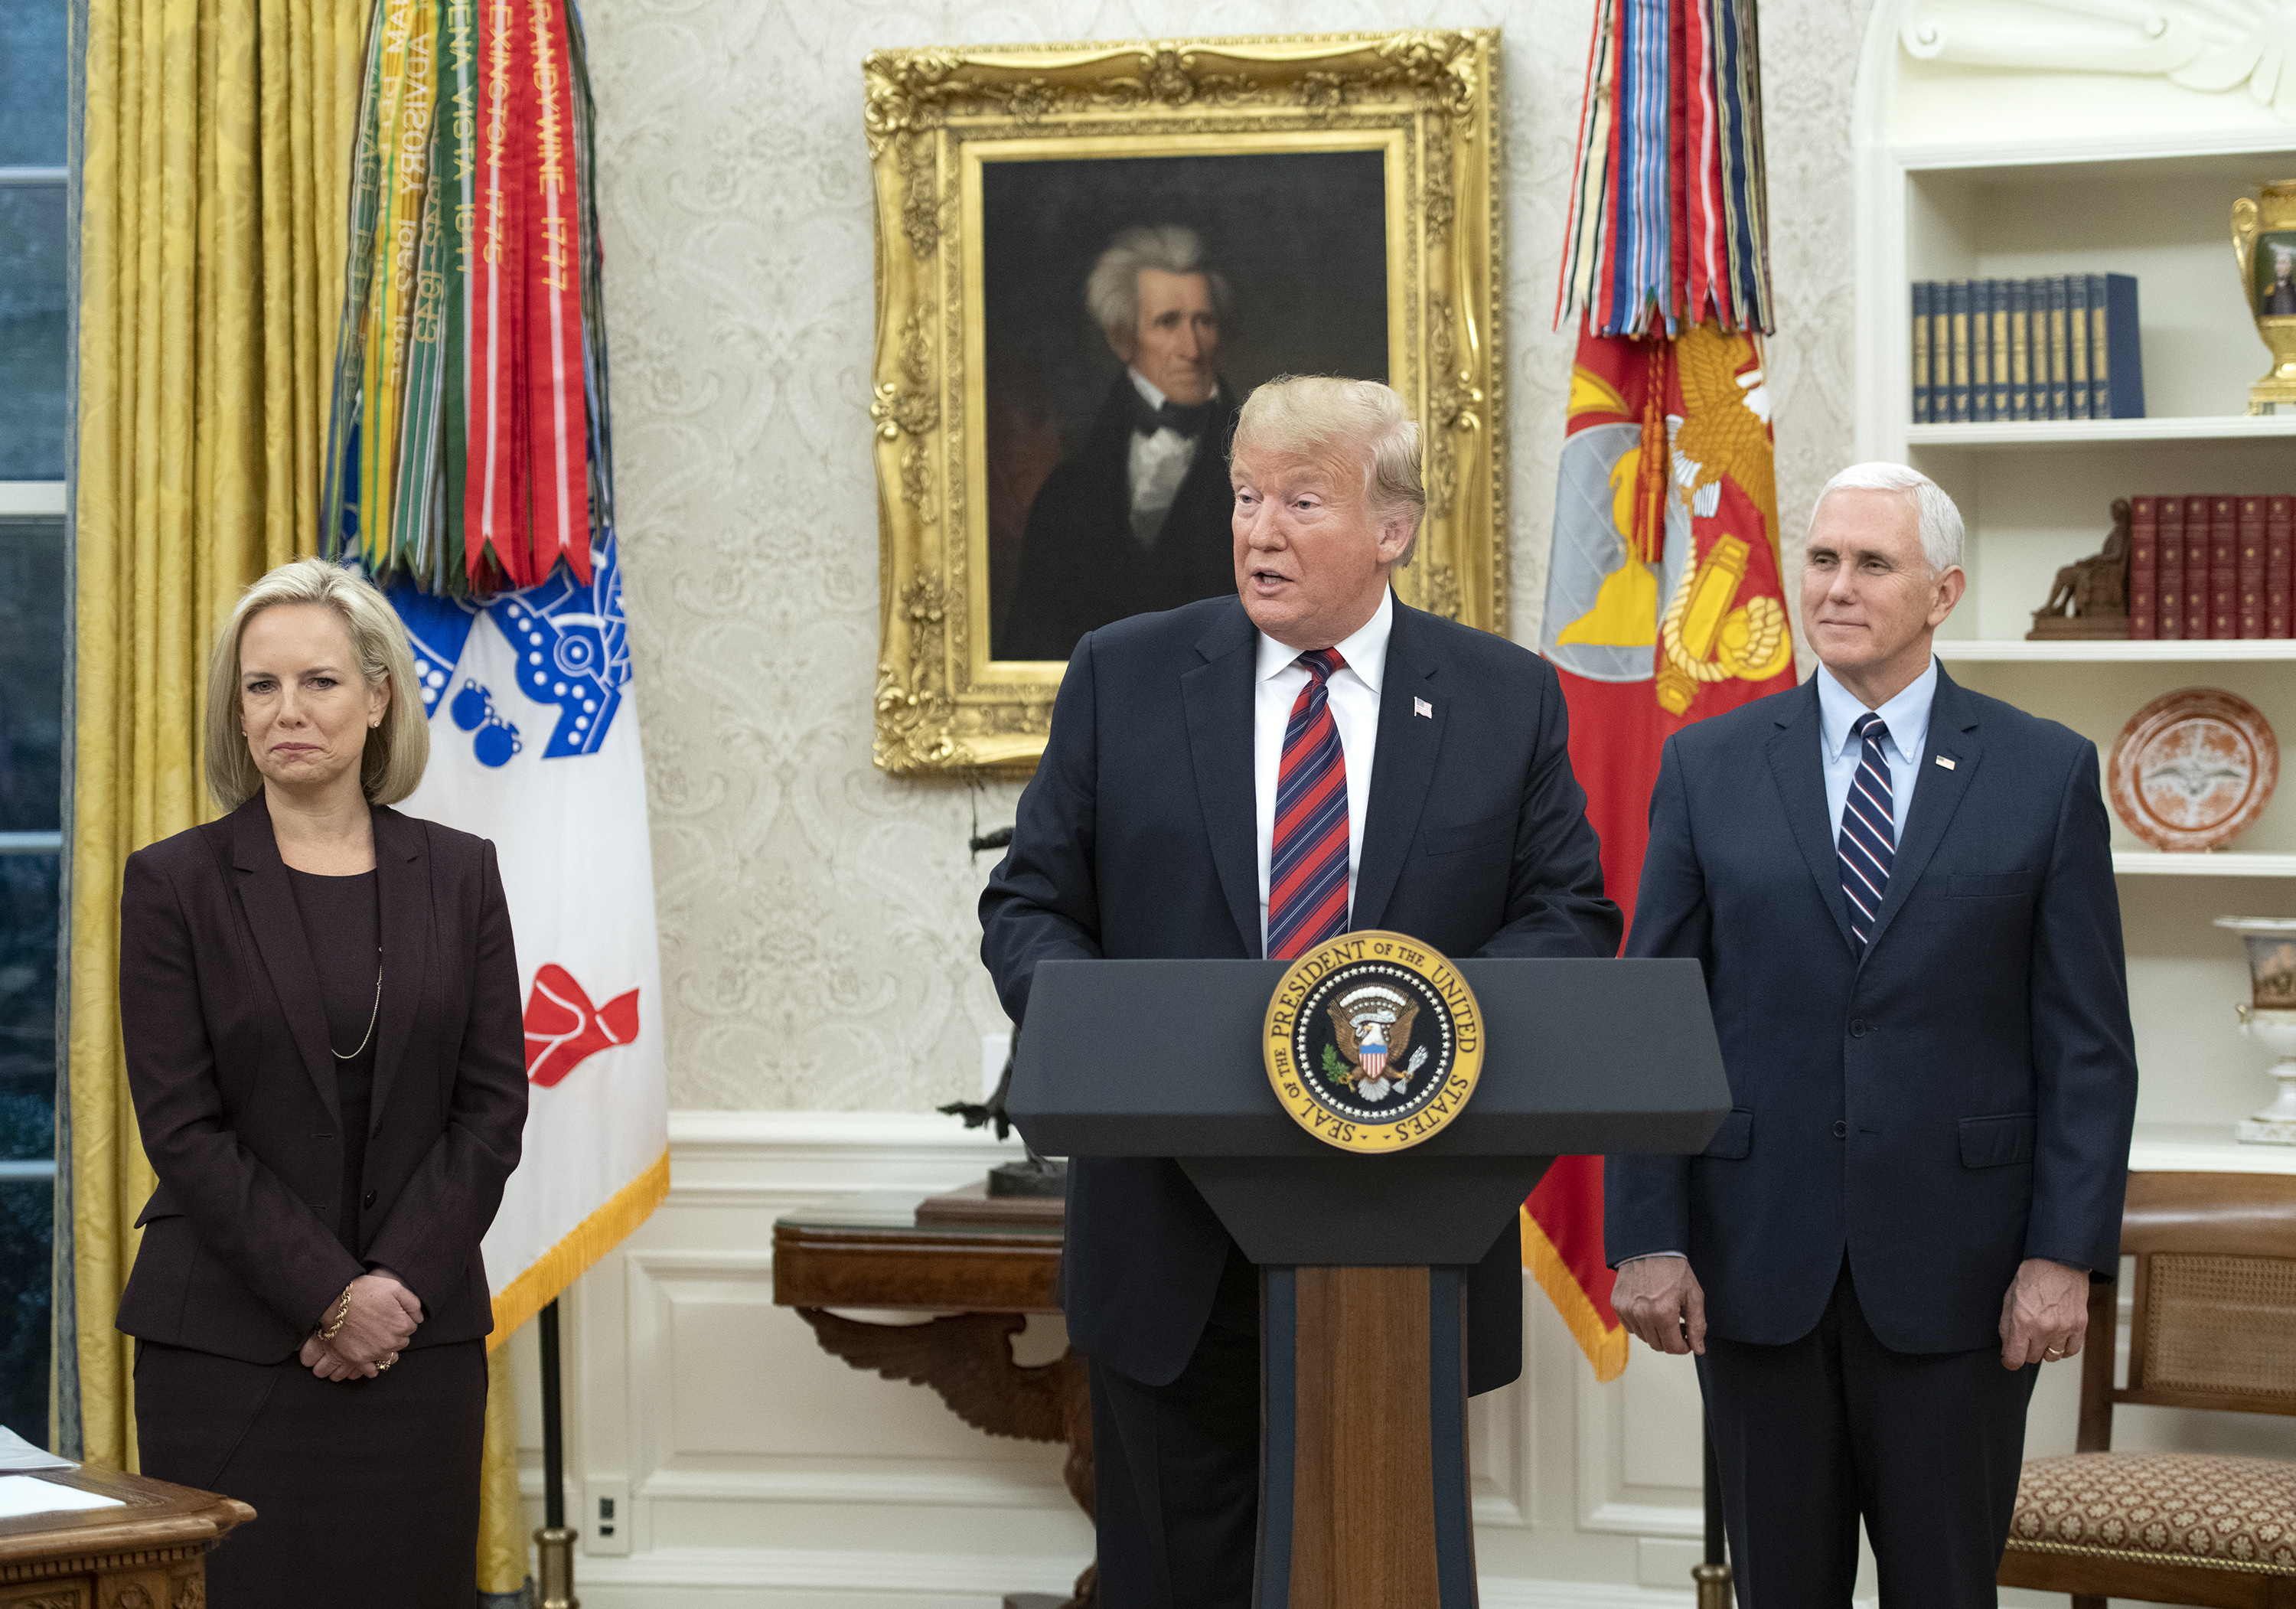 U.S. President Donald Trump, center, makes remarks as he hosts a naturalization ceremony in the Oval Office of the White House in Washington, DC, January 19, 2019. (Photo by Ron Sachs-Pool/Getty Images)